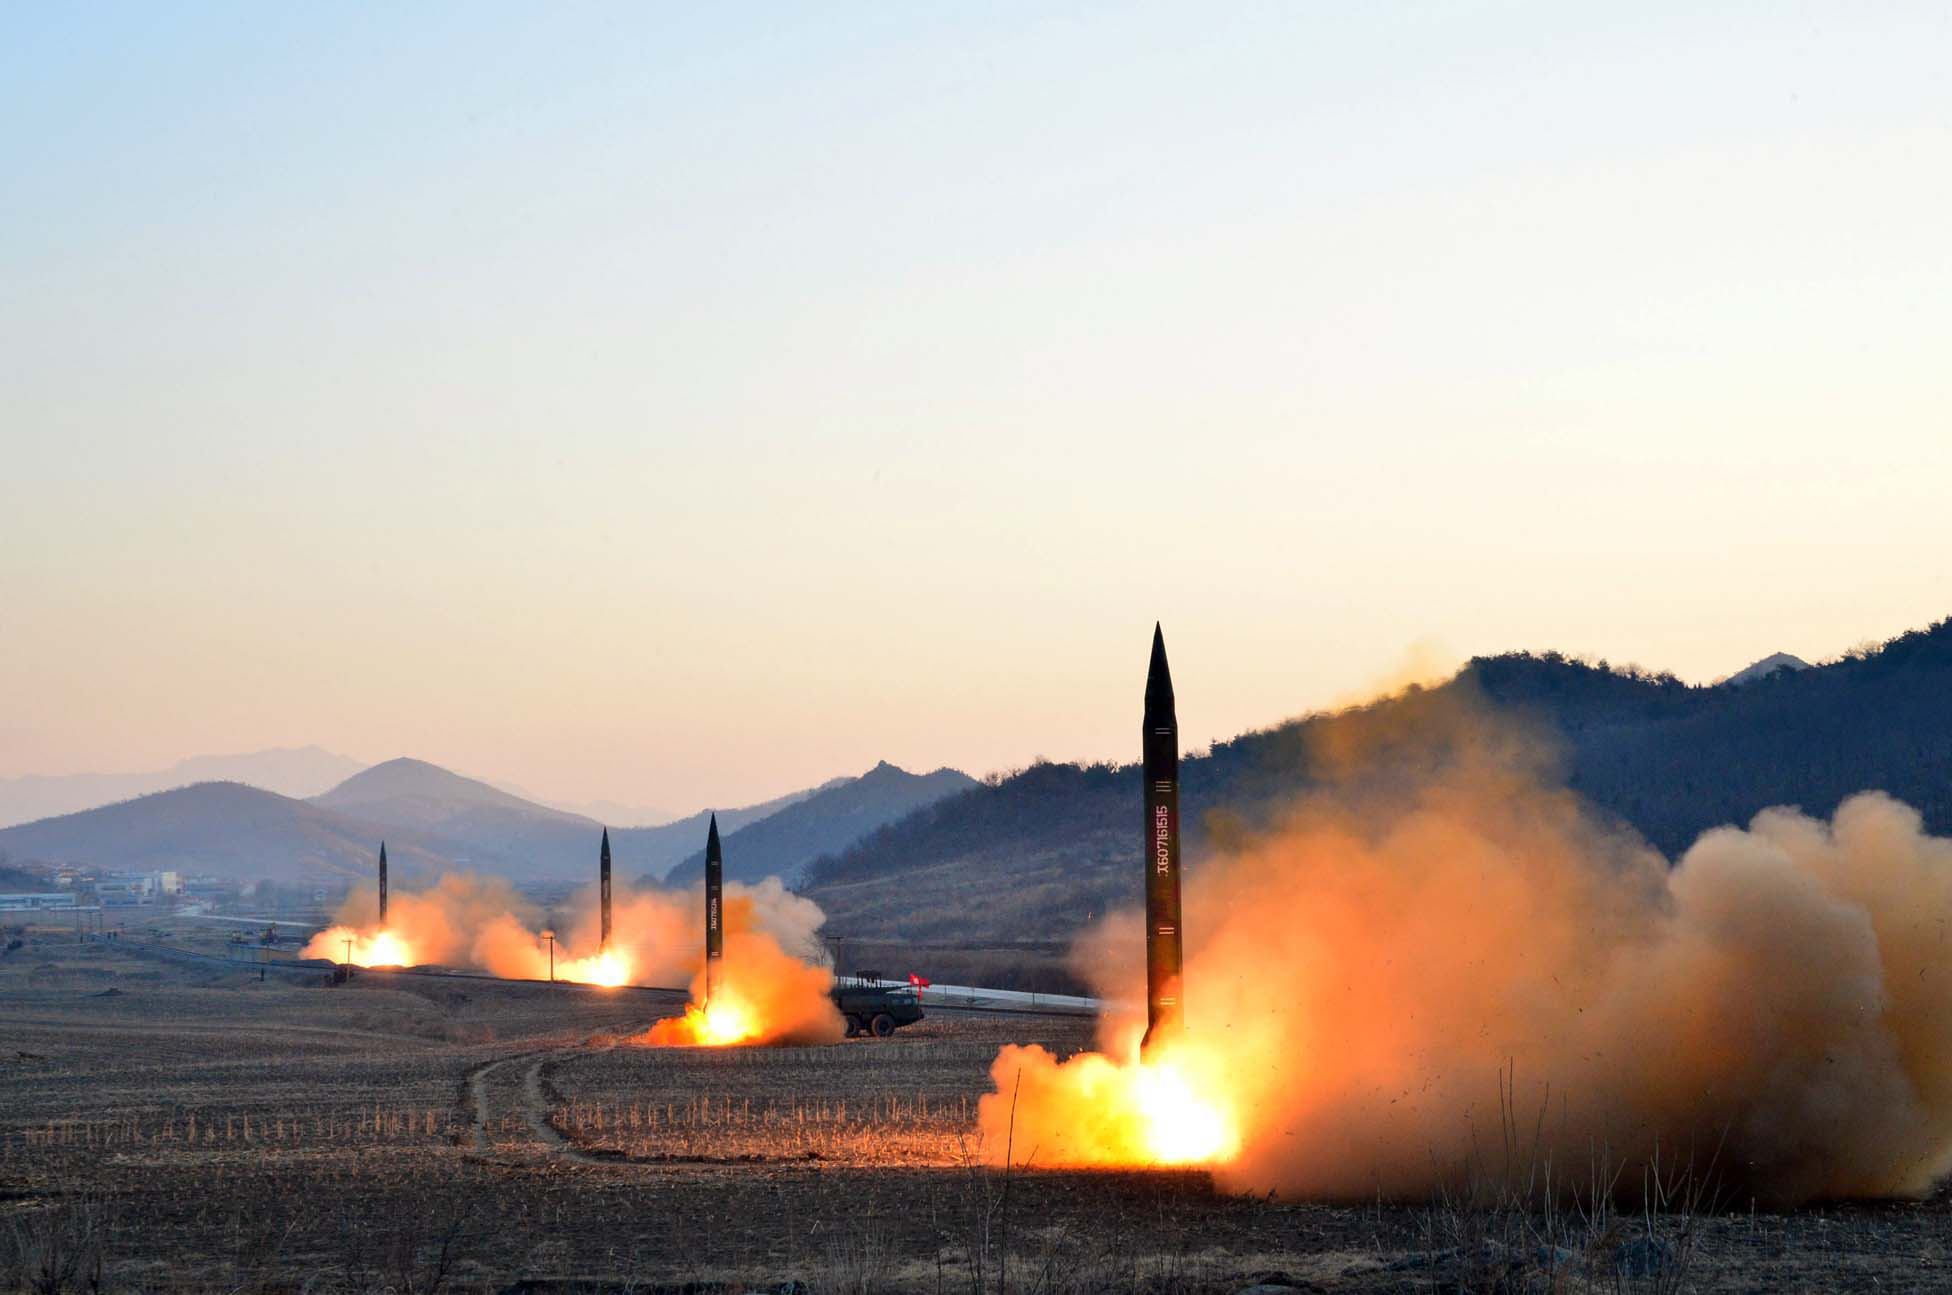 This undated picture released by North Korea's Korean Central News Agency (KCNA) via KNS on March 7, 2017 shows the launch of four ballistic missiles by the Korean People's Army (KPA) during a military drill at an undisclosed location in North Korea. Nuclear-armed North Korea launched four ballistic missiles on March 6 in another challenge to President Donald Trump, with three landing provocatively close to America's ally Japan. / AFP PHOTO / KCNA VIA KNS / STR / South Korea OUT / REPUBLIC OF KOREA OUT ---EDITORS NOTE--- RESTRICTED TO EDITORIAL USE - MANDATORY CREDIT